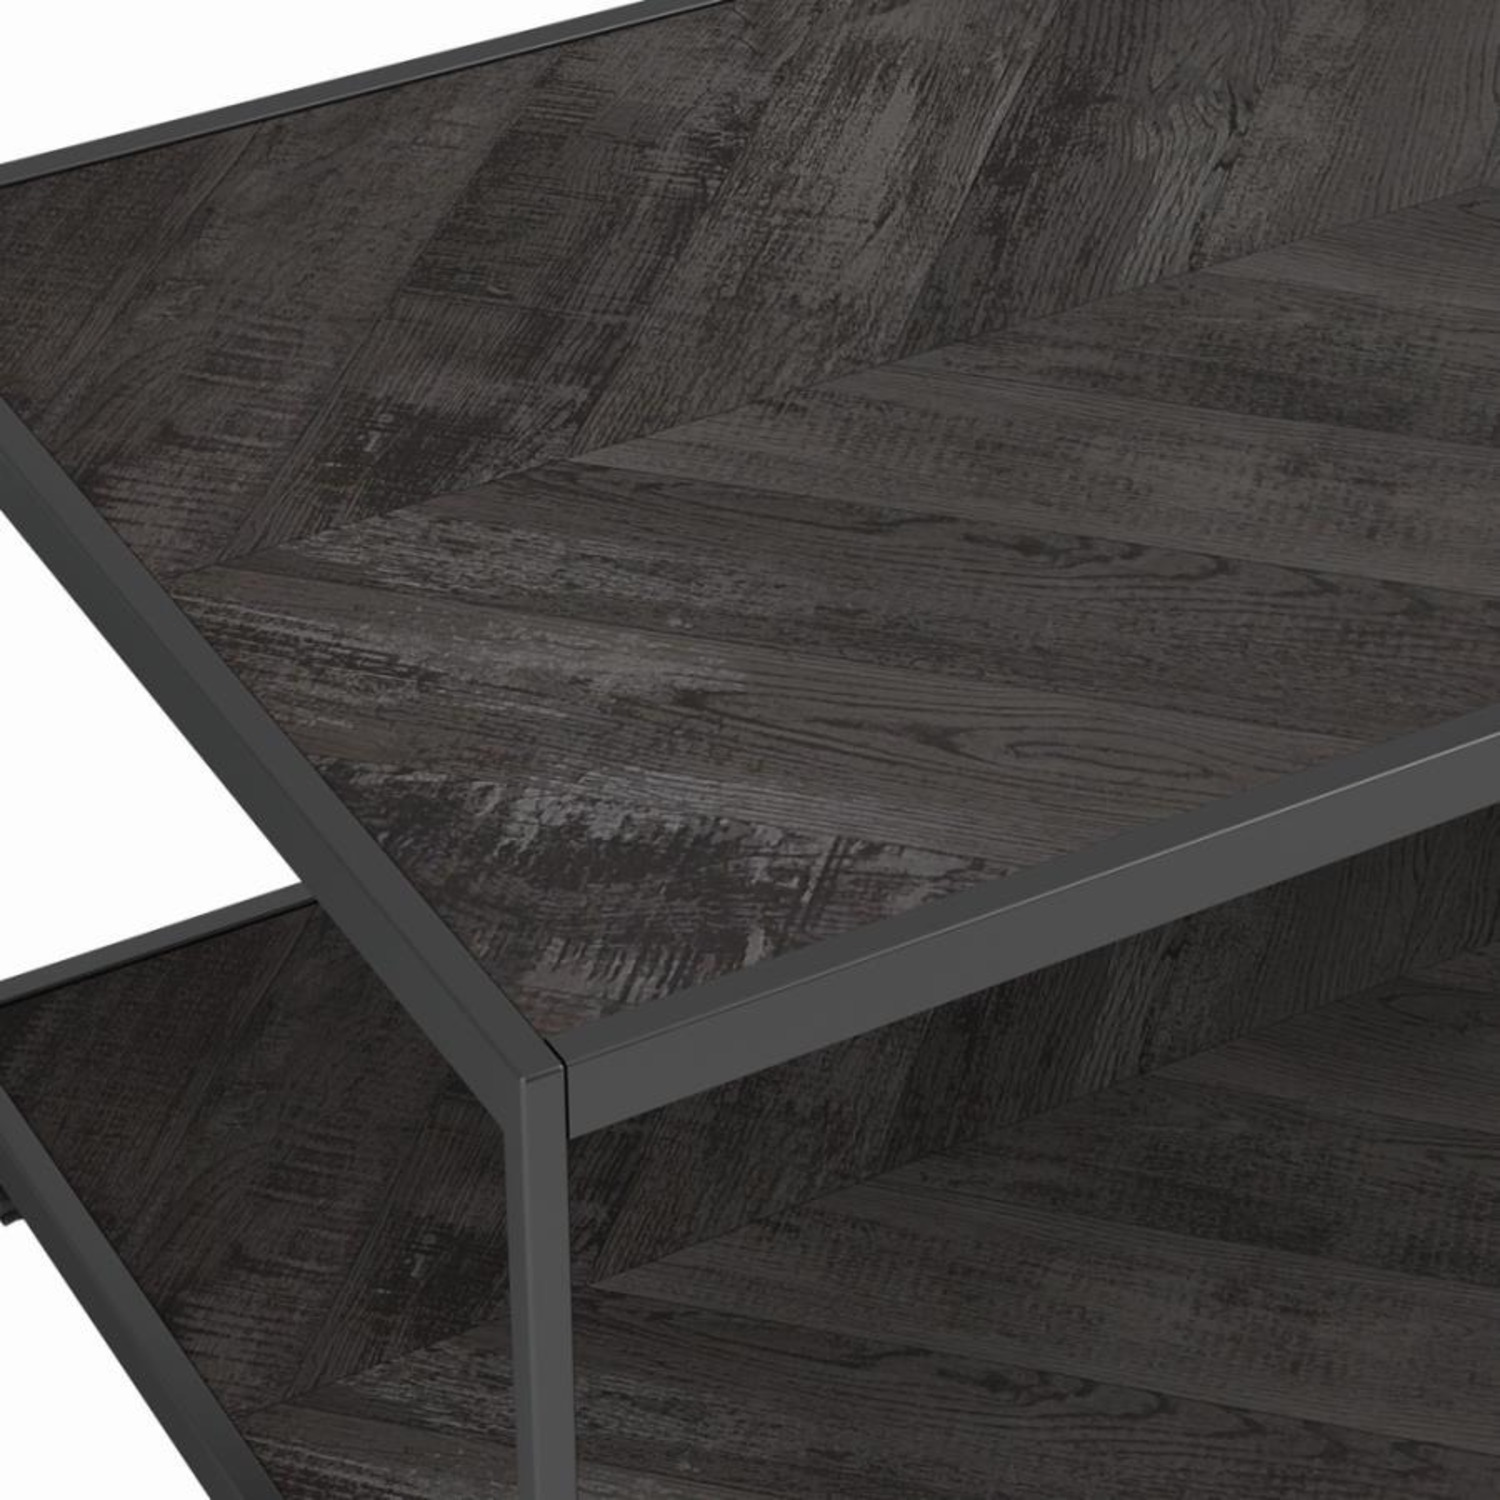 End Table W/ Metal Frame In Sandy Black Finish - image-3